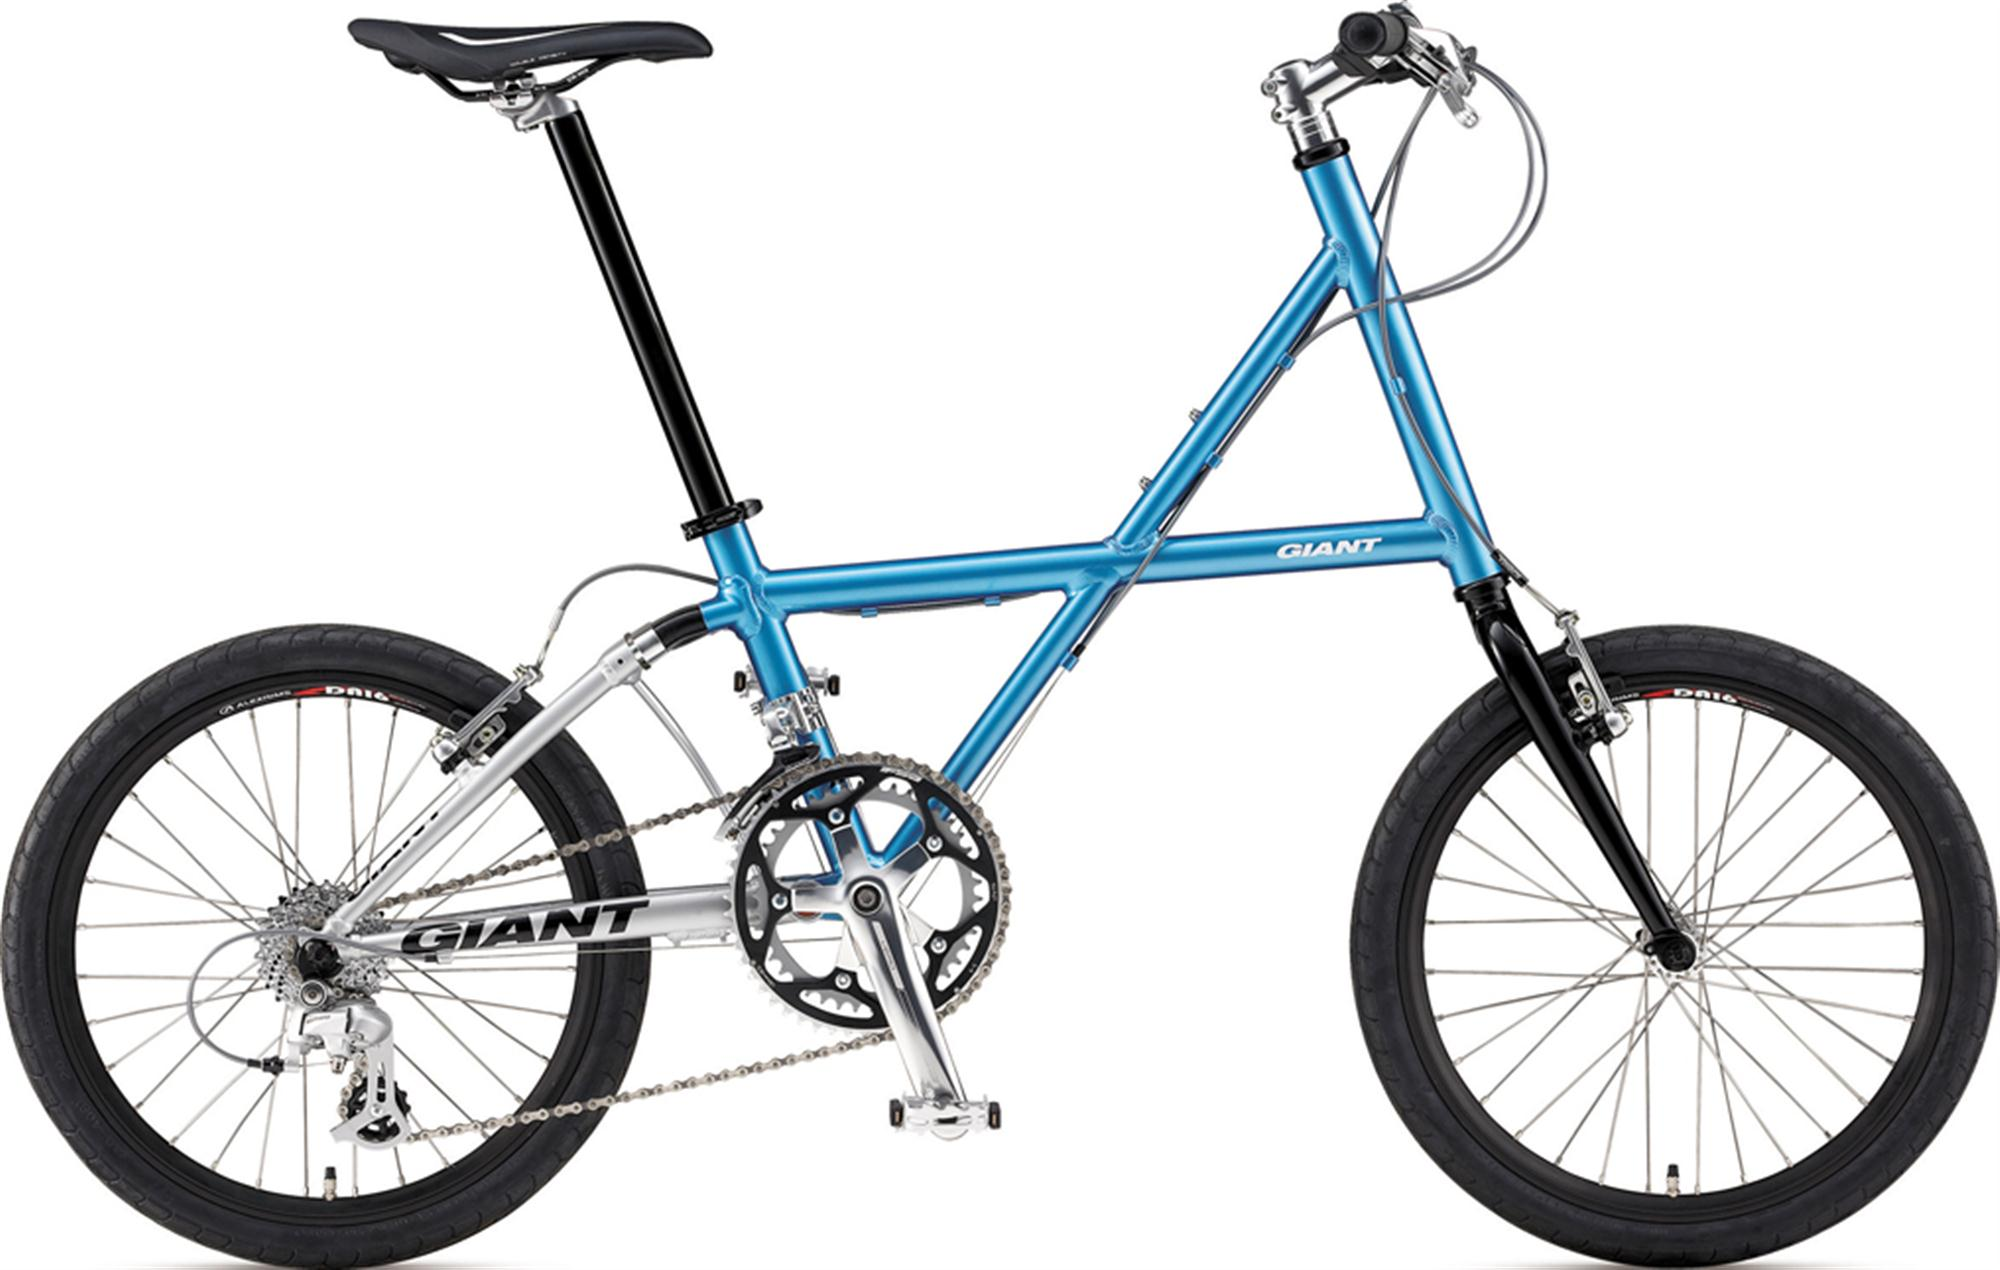 Escape Mini RS (2011) - Bikes | Giant Bicycles | International